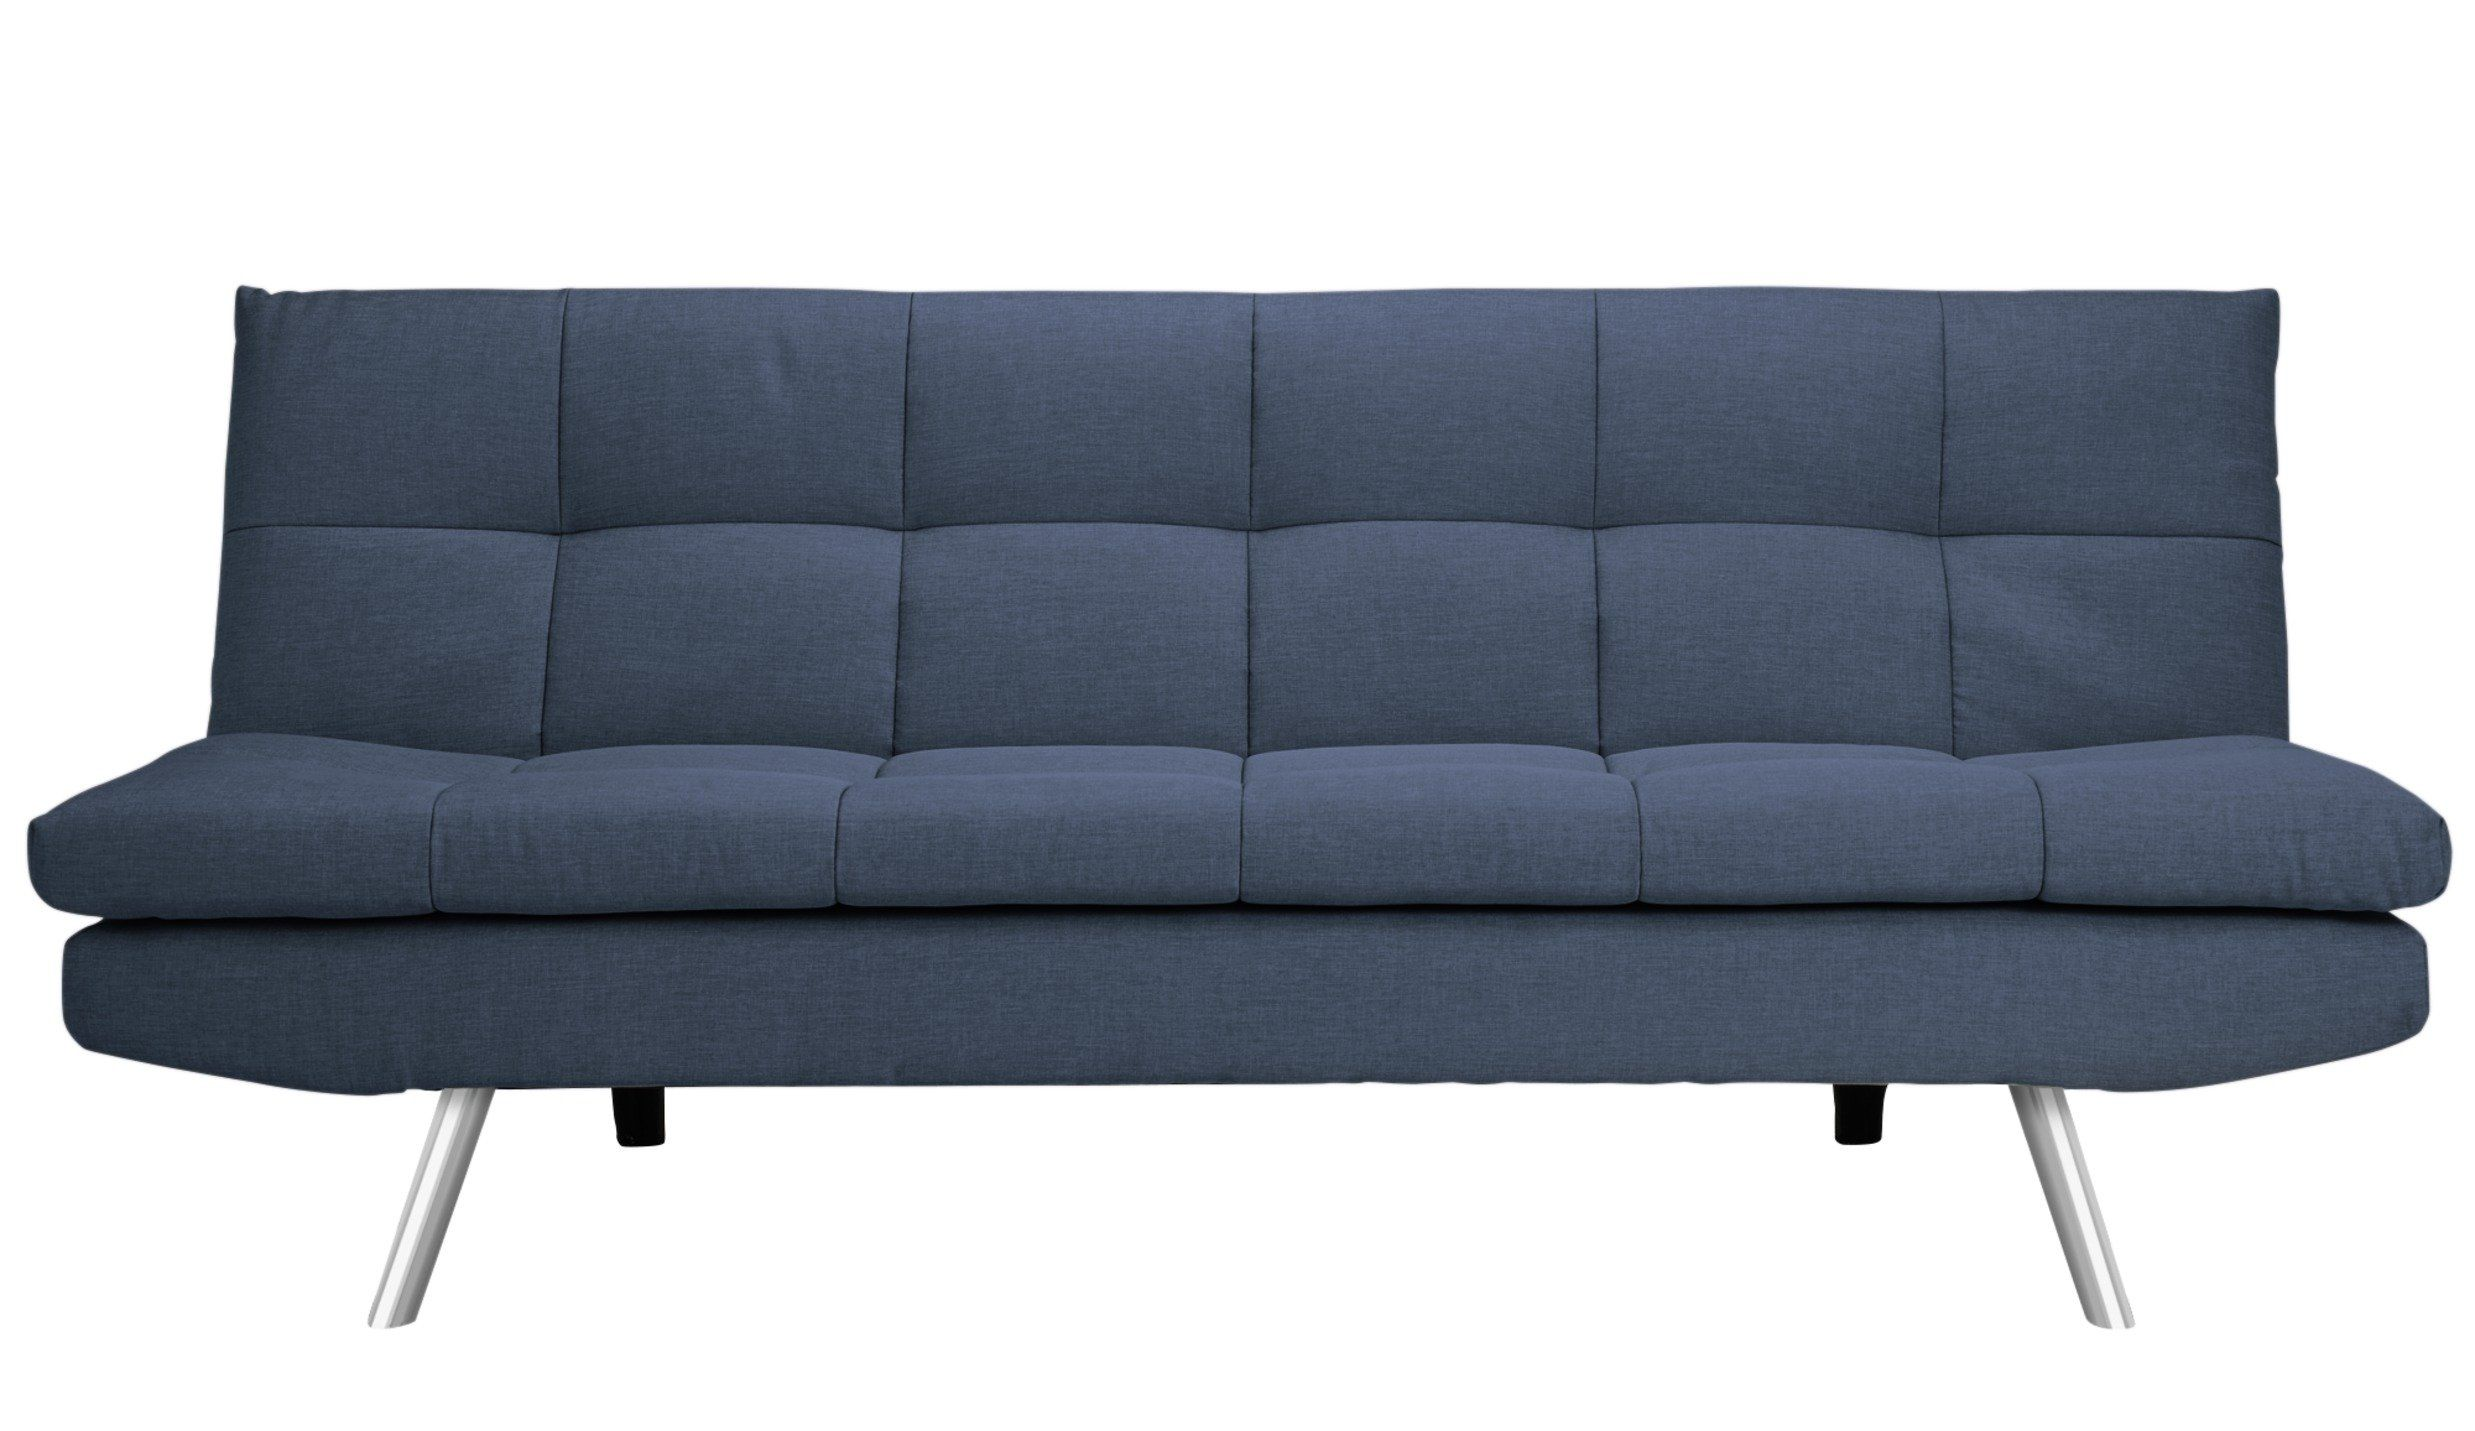 Fabric Sofa Beds Sofa Bed With Storage Fabric Sofa Couch Furniture